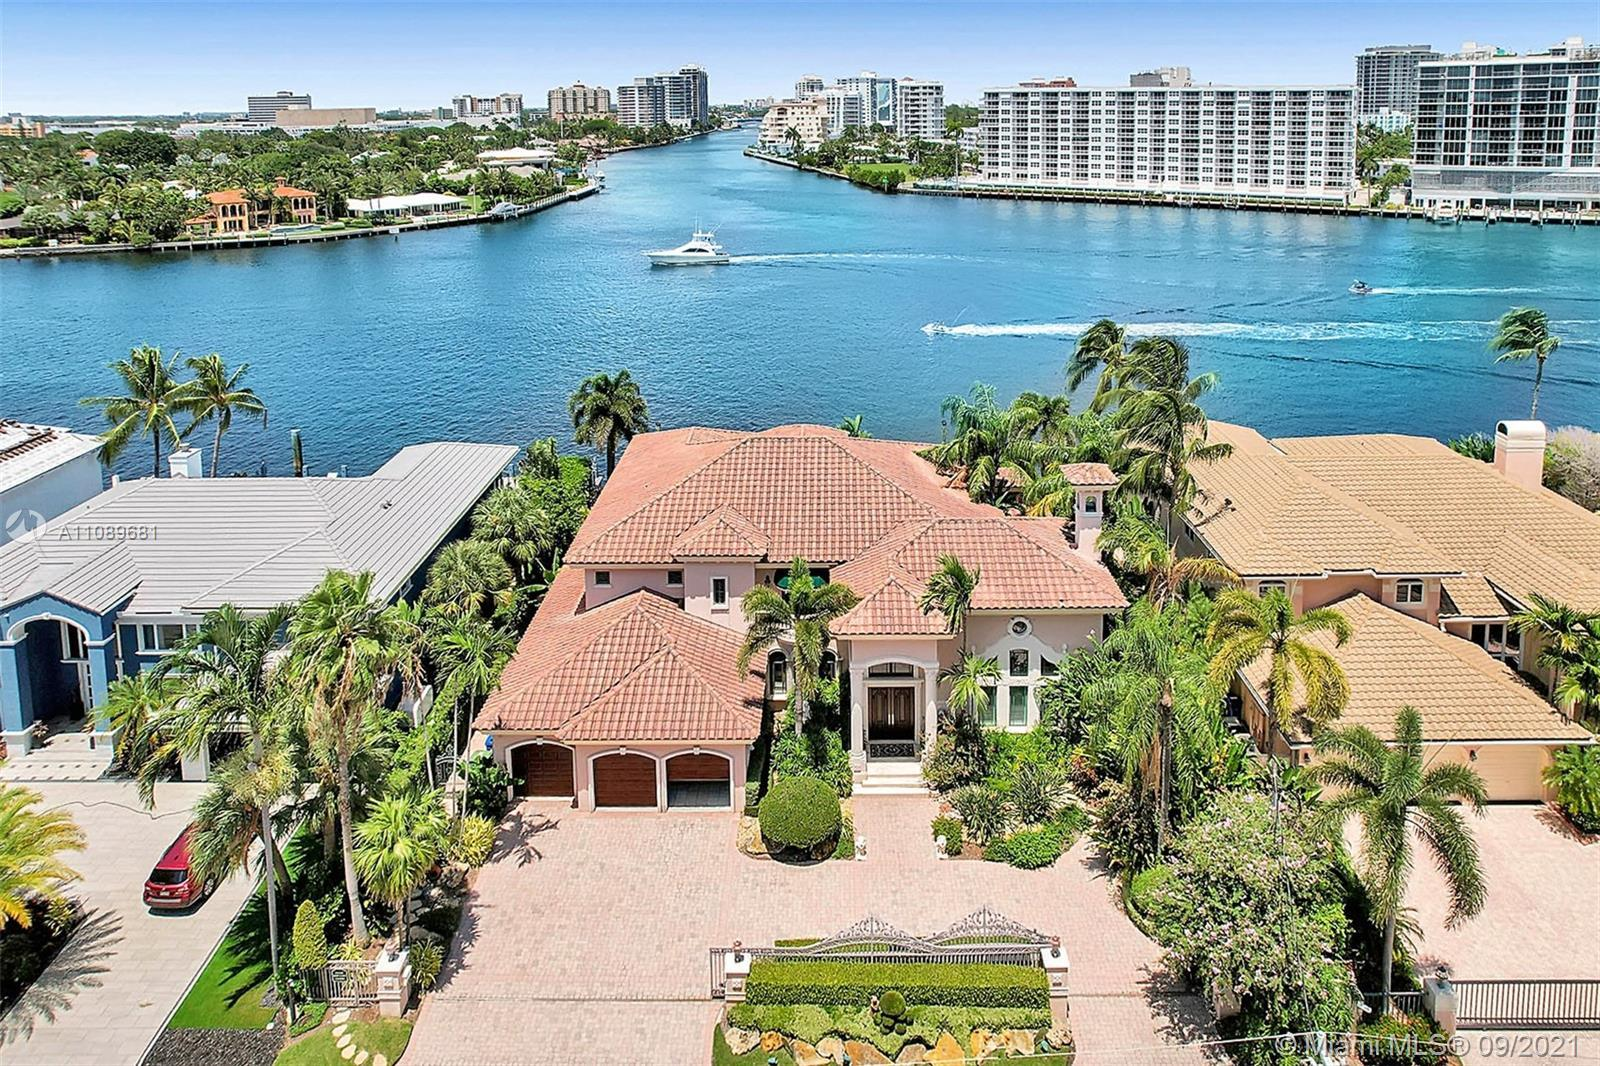 DREAM LOCATION!! Never settle, you deserve the best of both worlds; Exclusive wide-water views of th